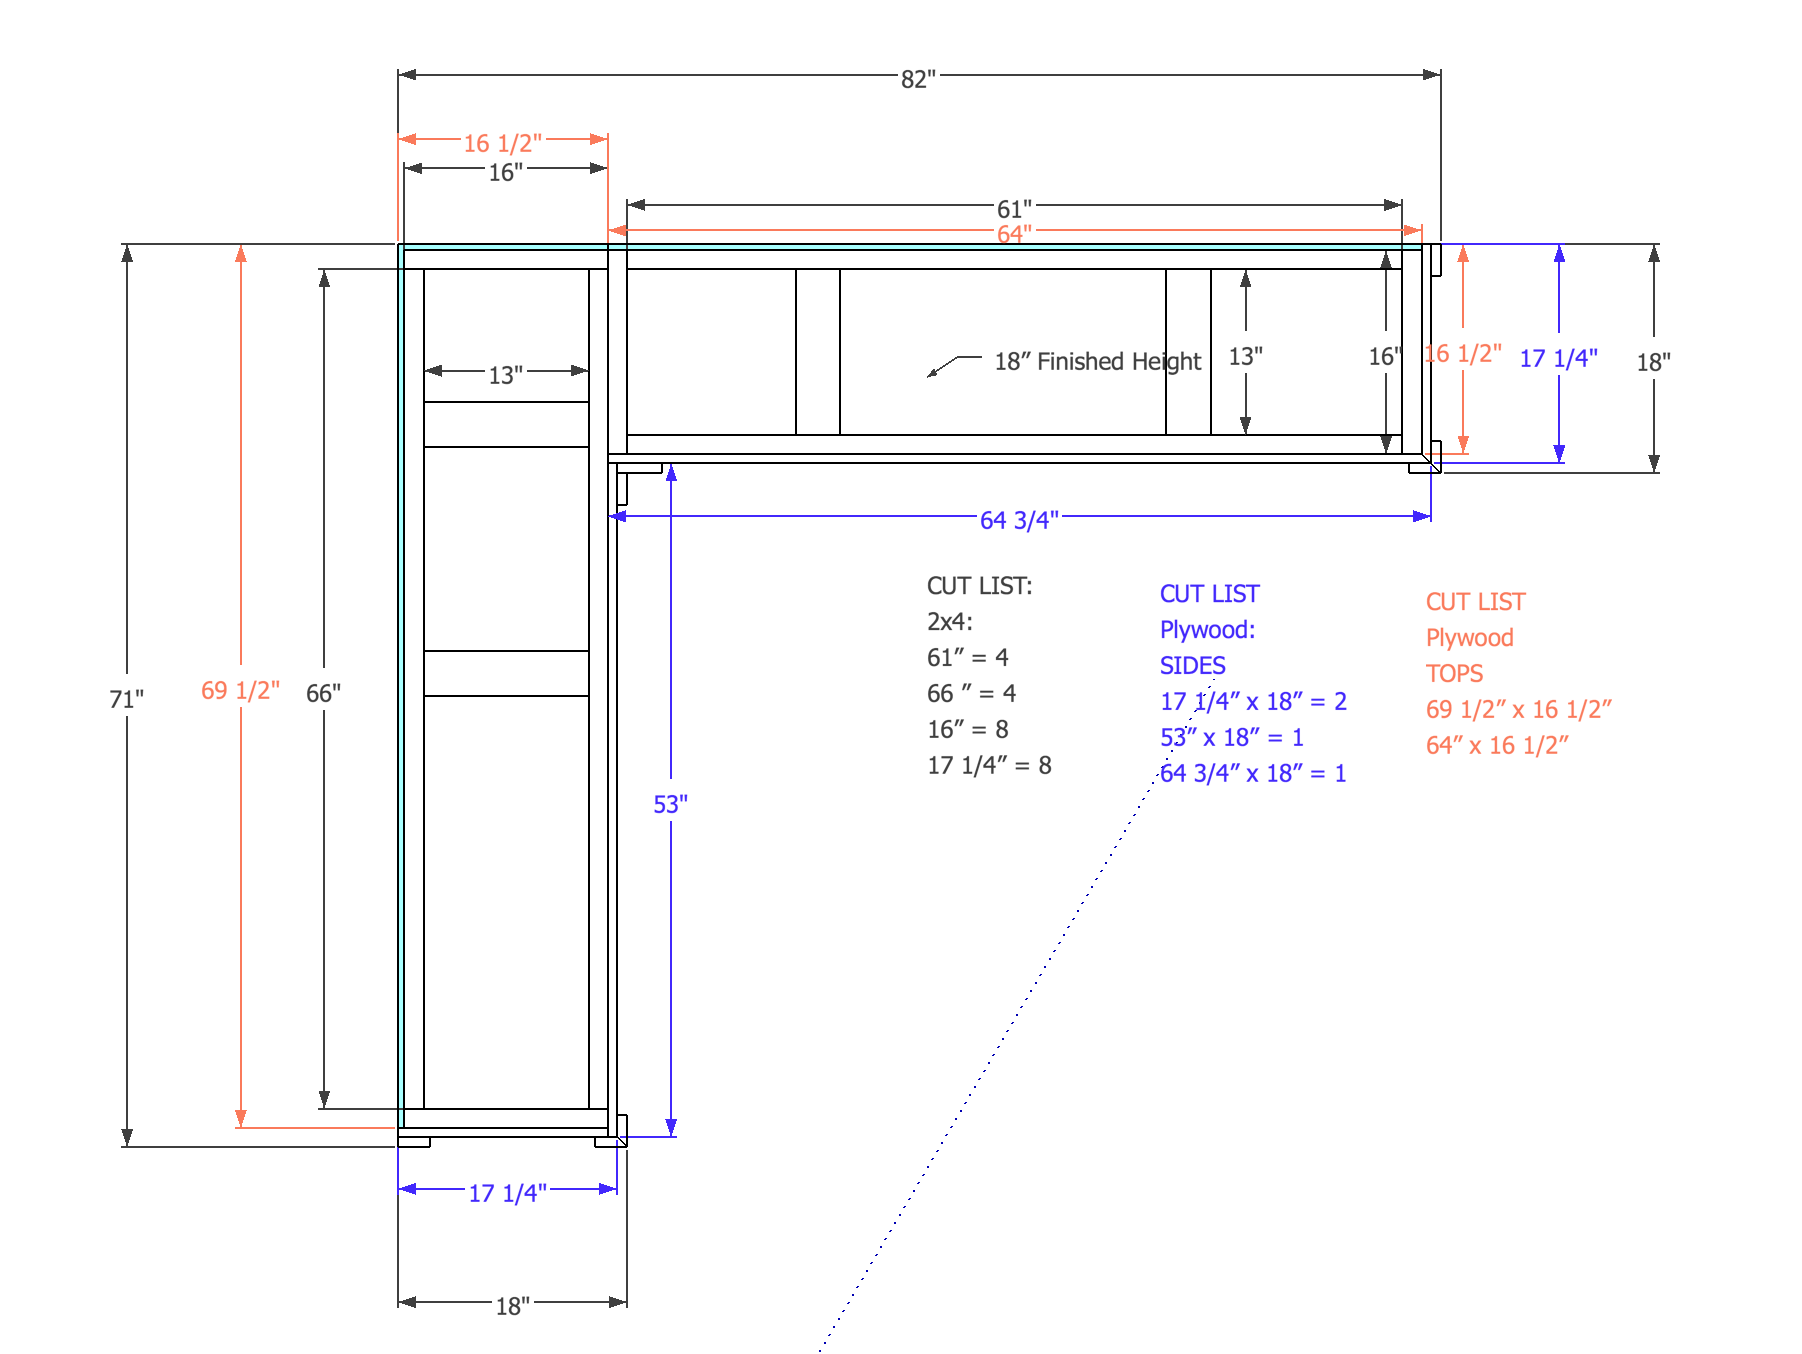 Bench Overhead Plan view with cuts